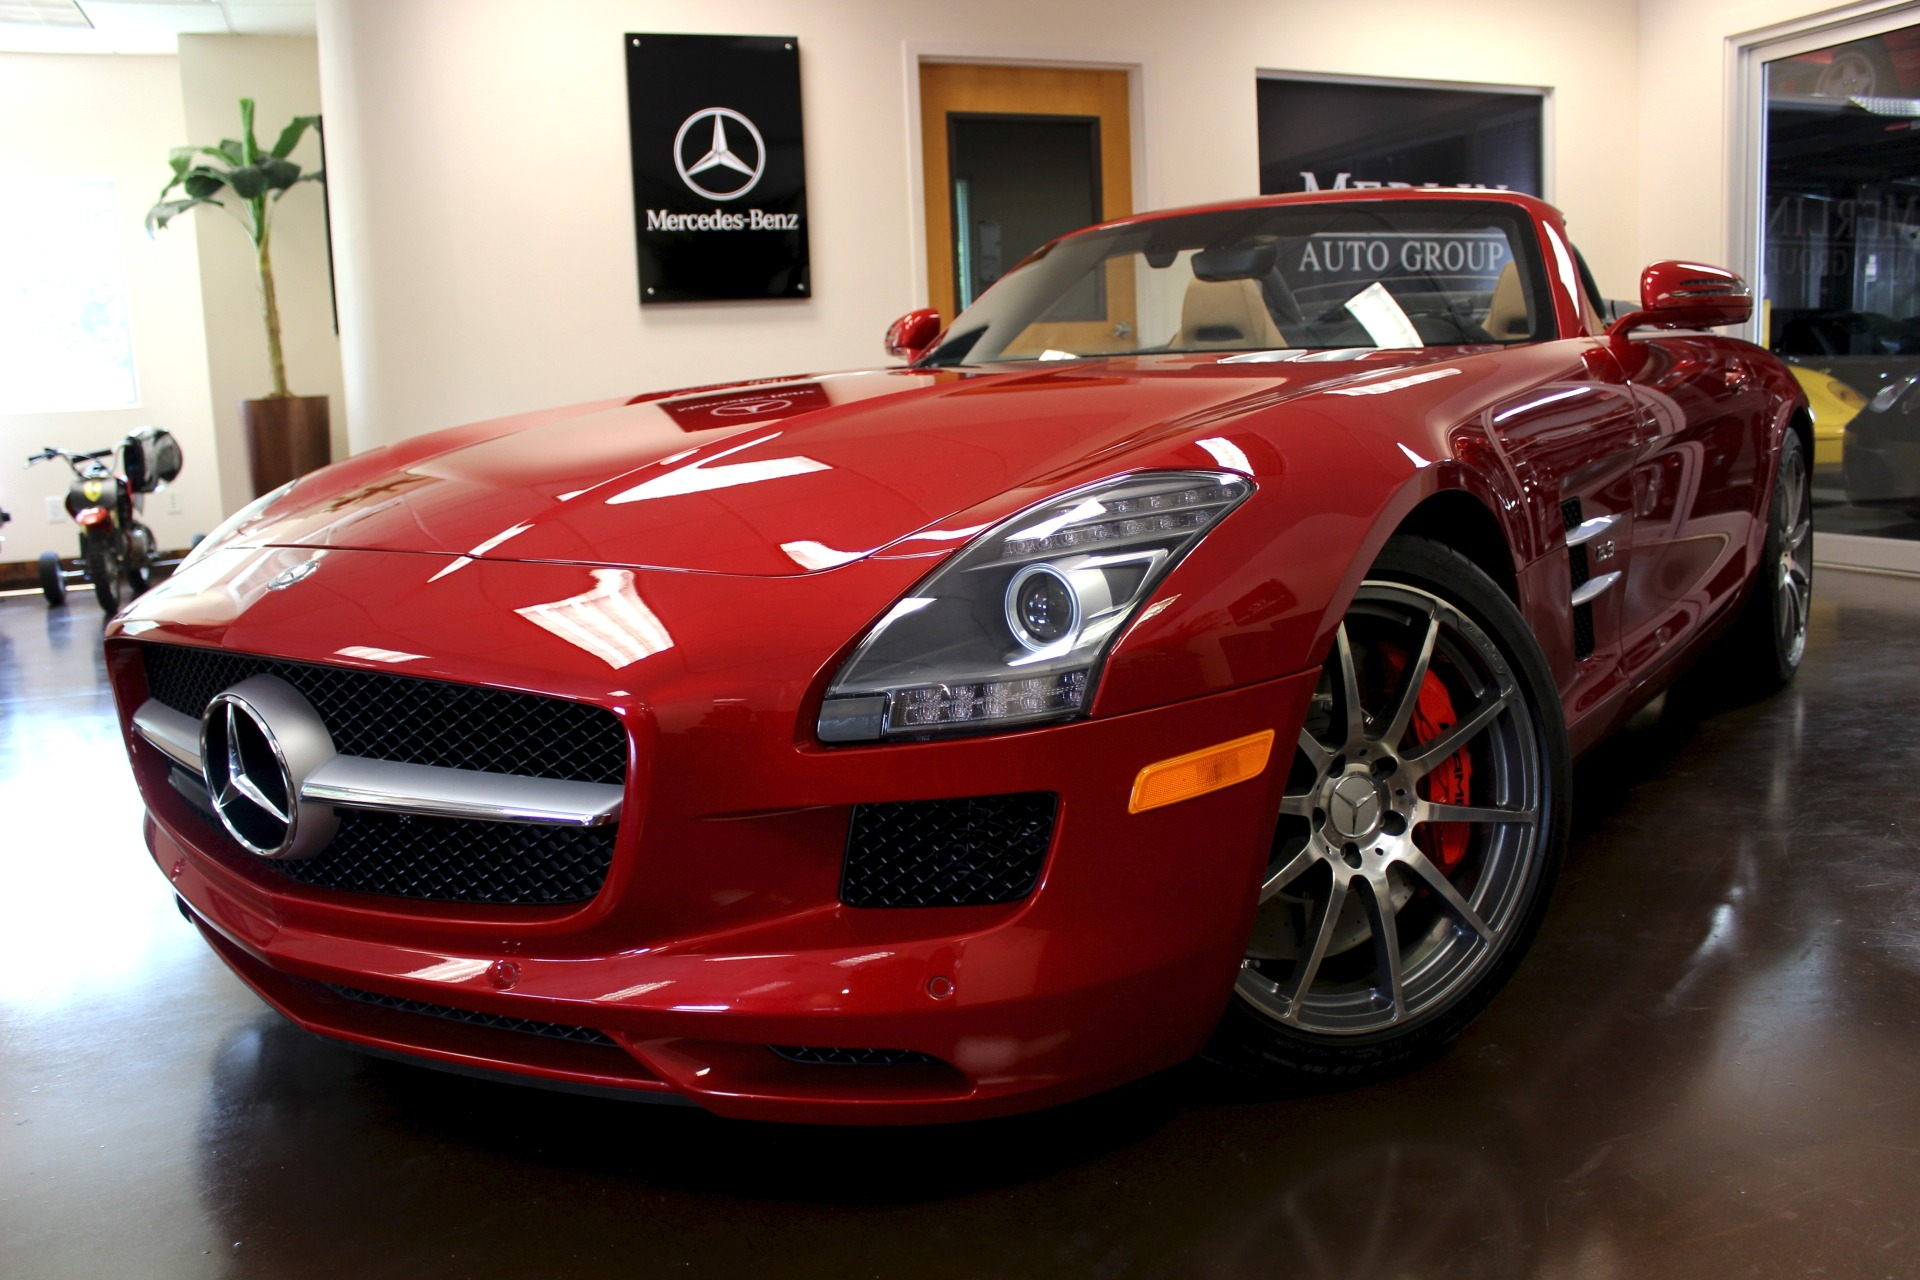 used 2012 mercedes benz sls stock p3669 ultra luxury car from merlin auto group. Black Bedroom Furniture Sets. Home Design Ideas